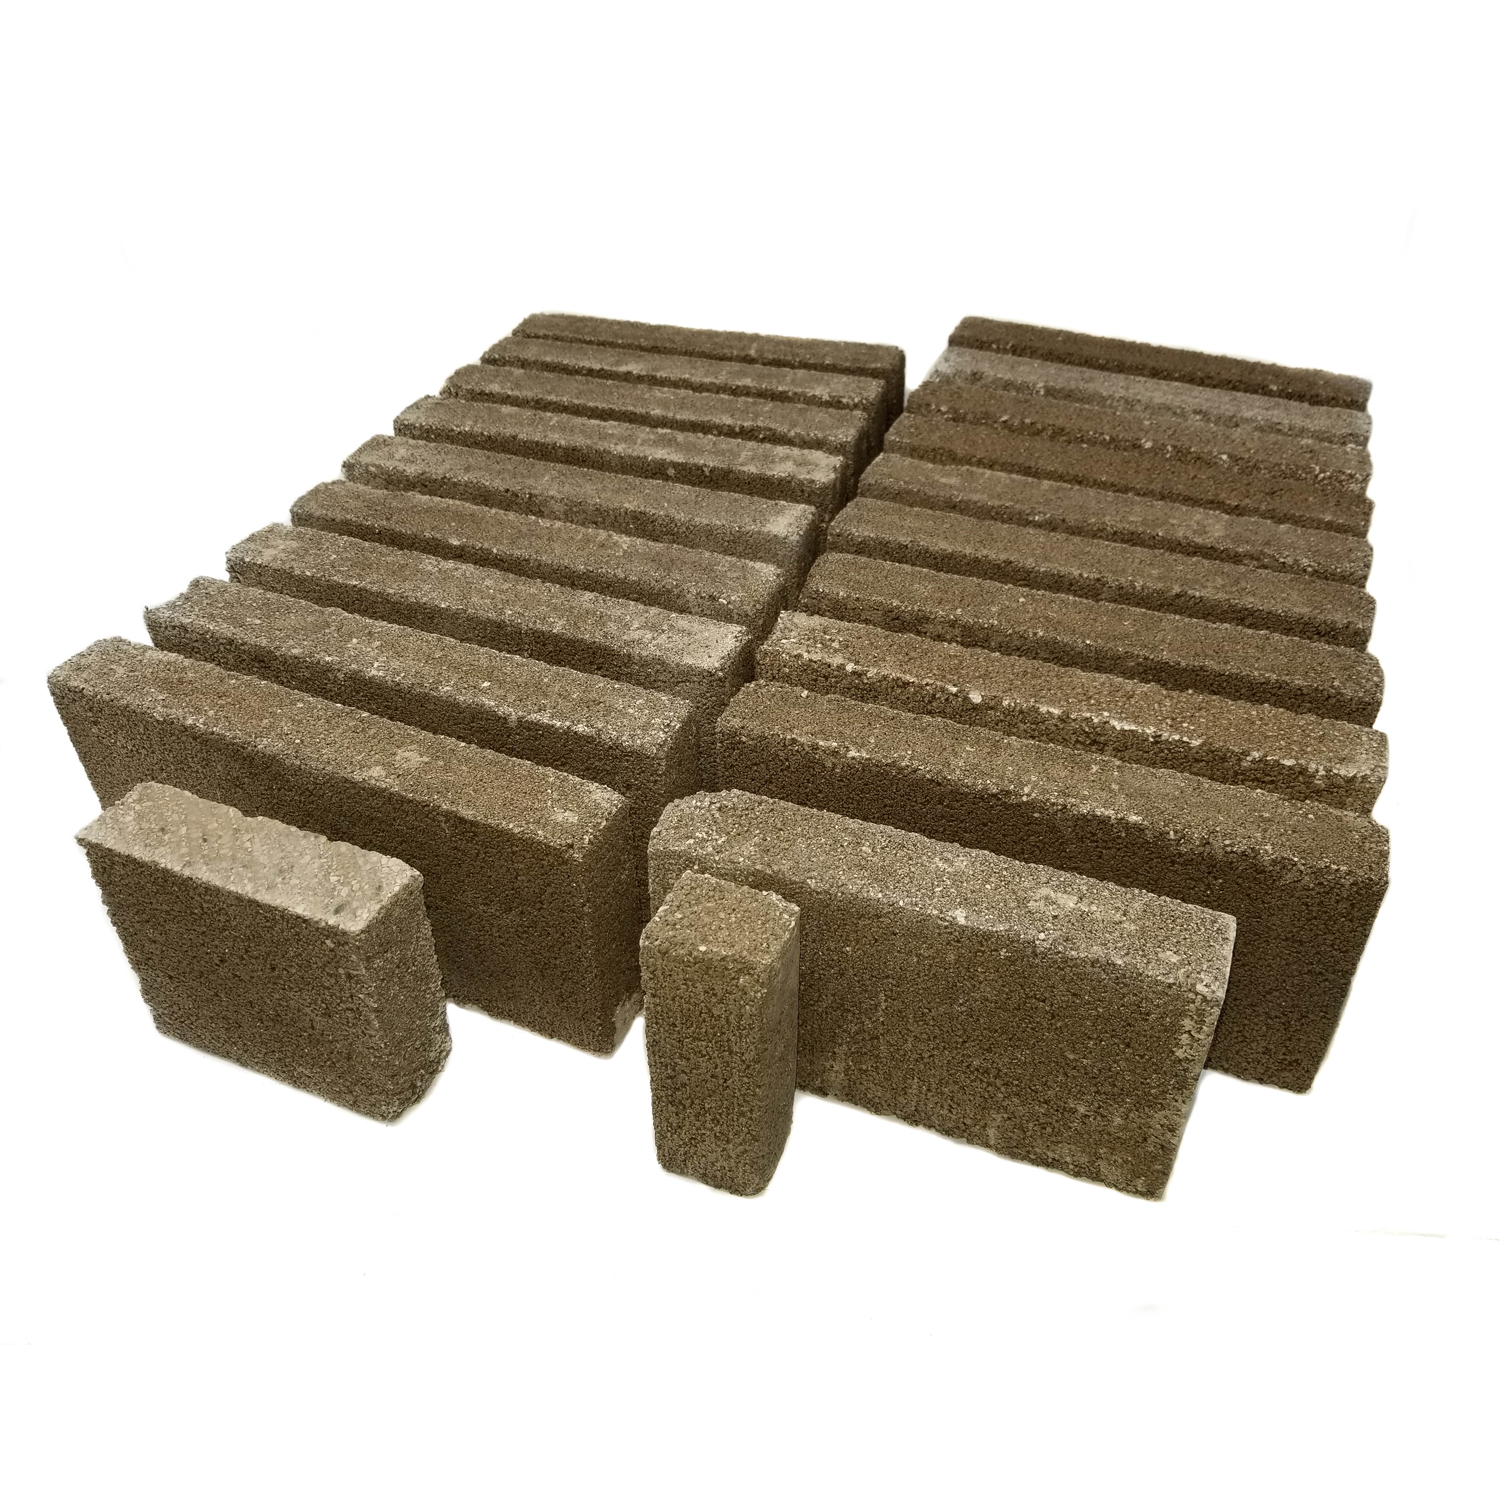 Pacific Energy Pcp 24 Piece Summit Brick Set Bric Summa